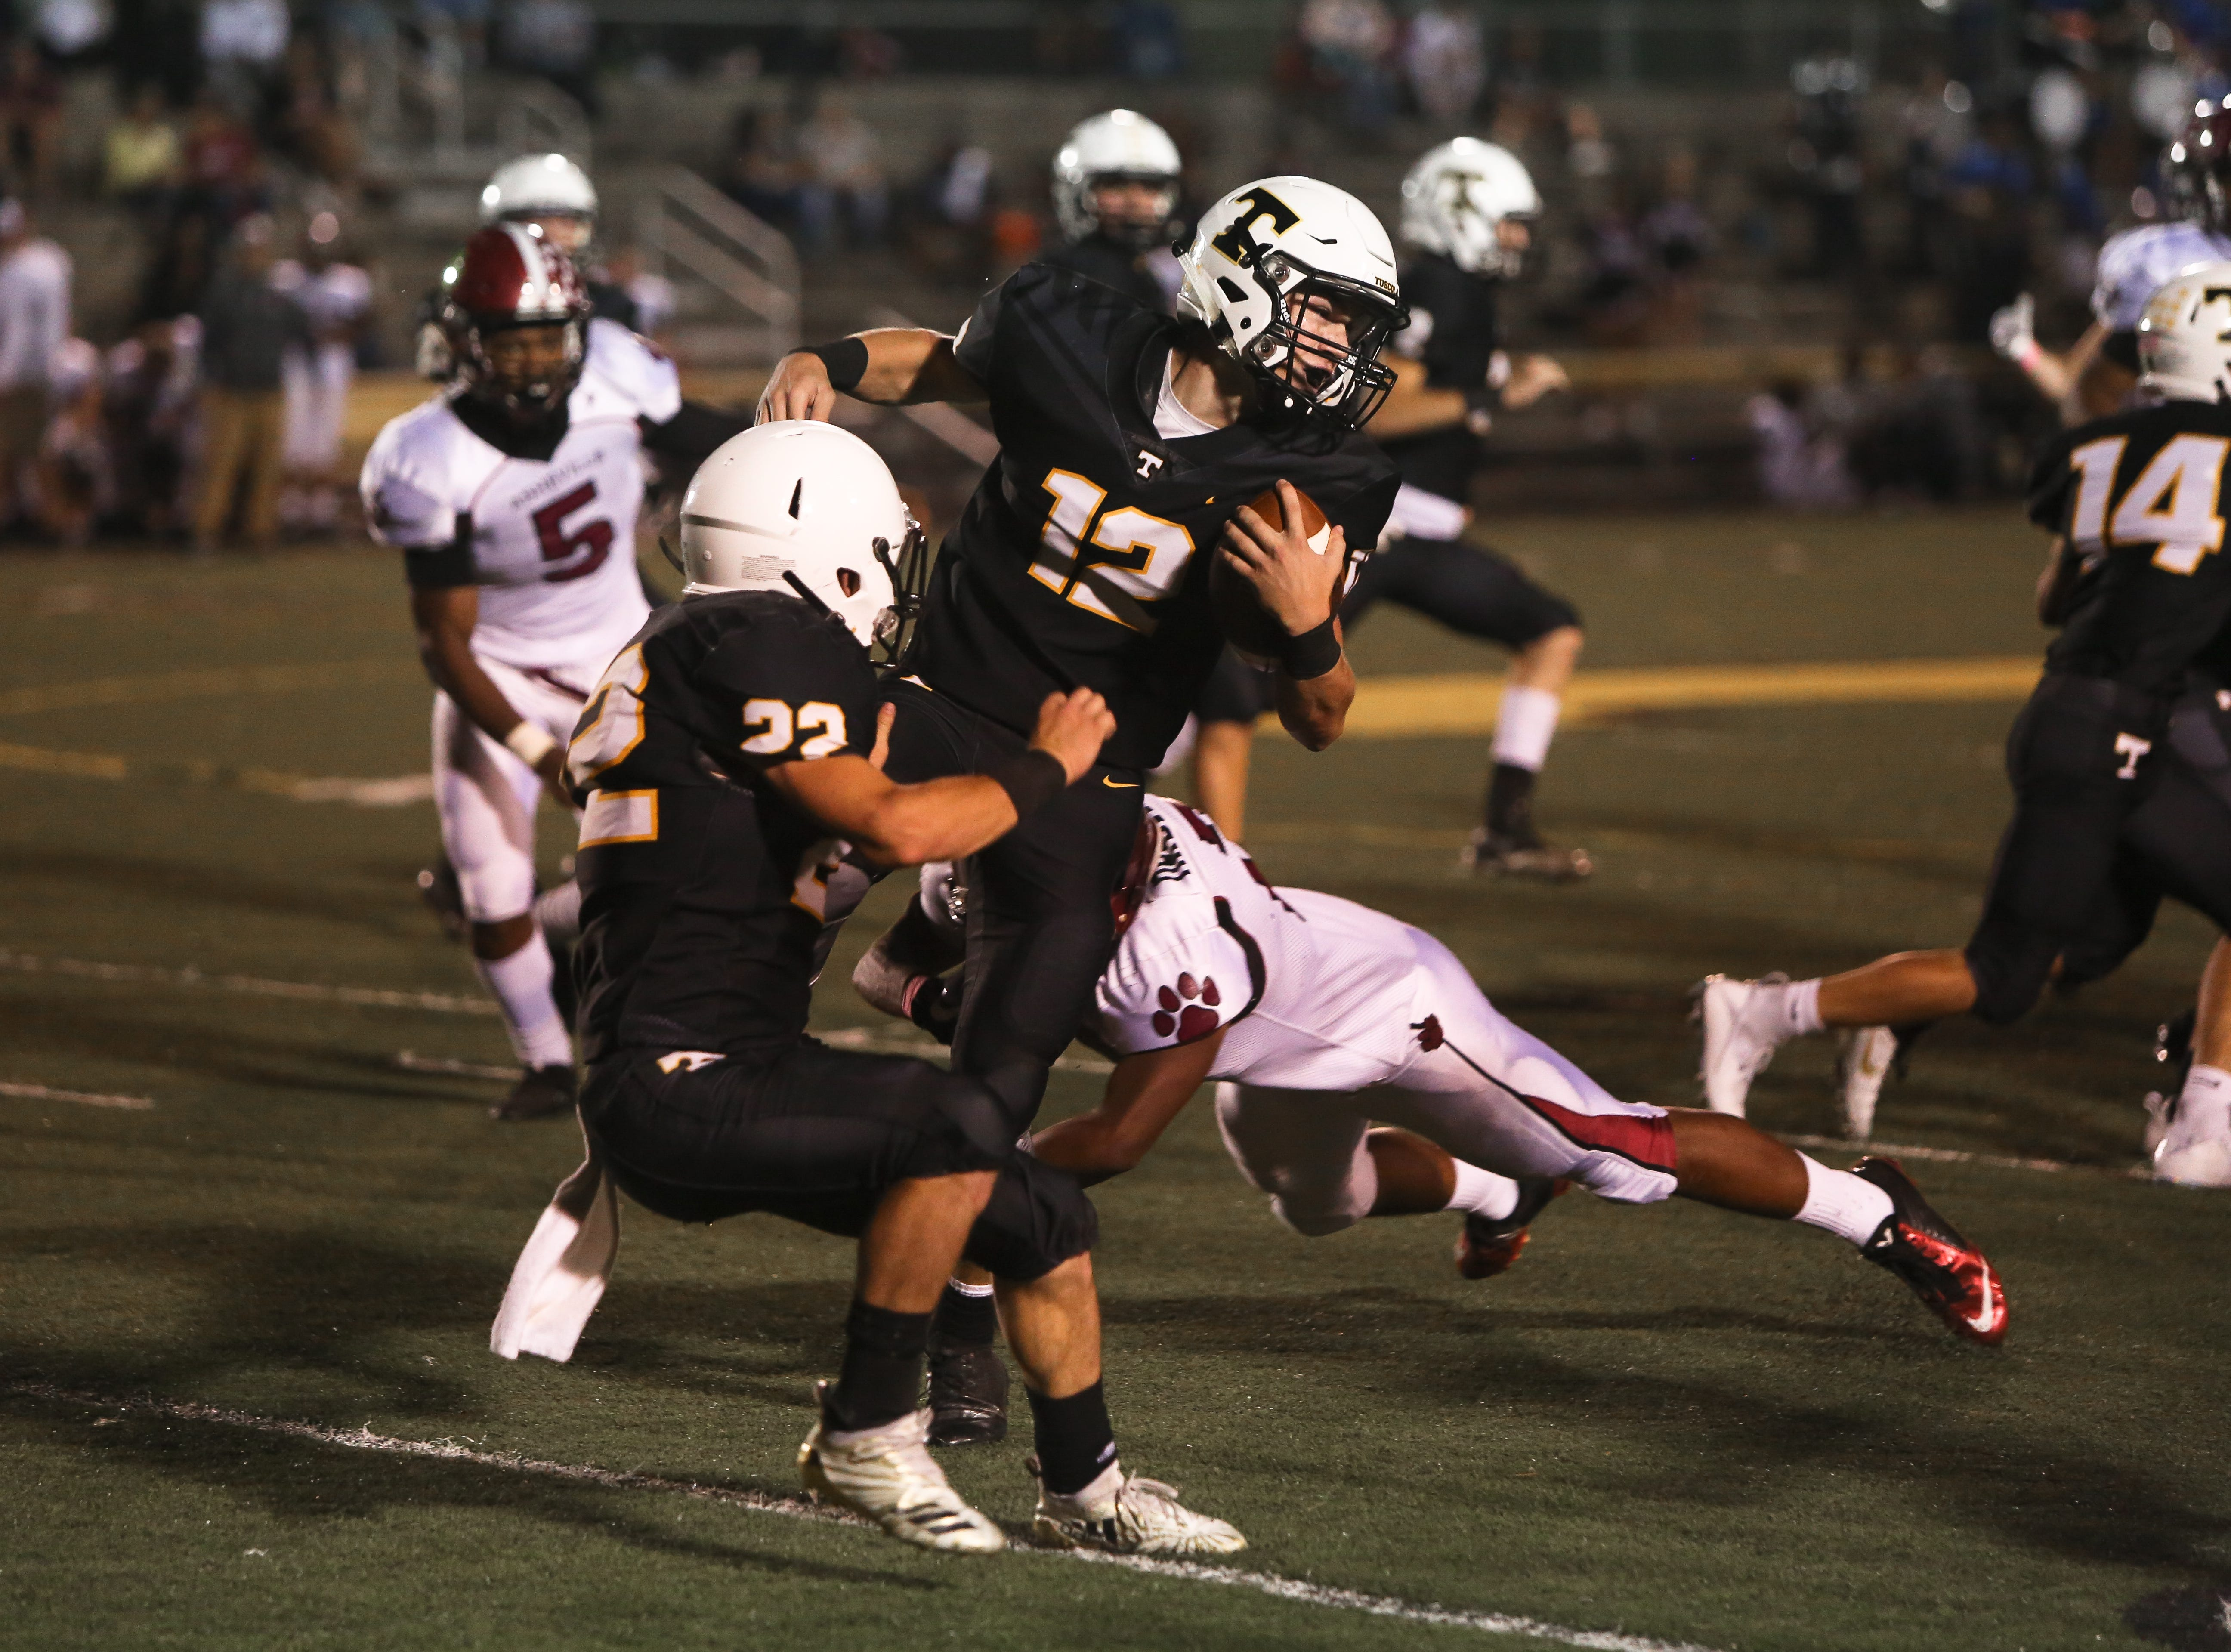 Asheville High defeated Tuscola 37-6 in a high school football game Oct. 5, 2018, at Tuscola.